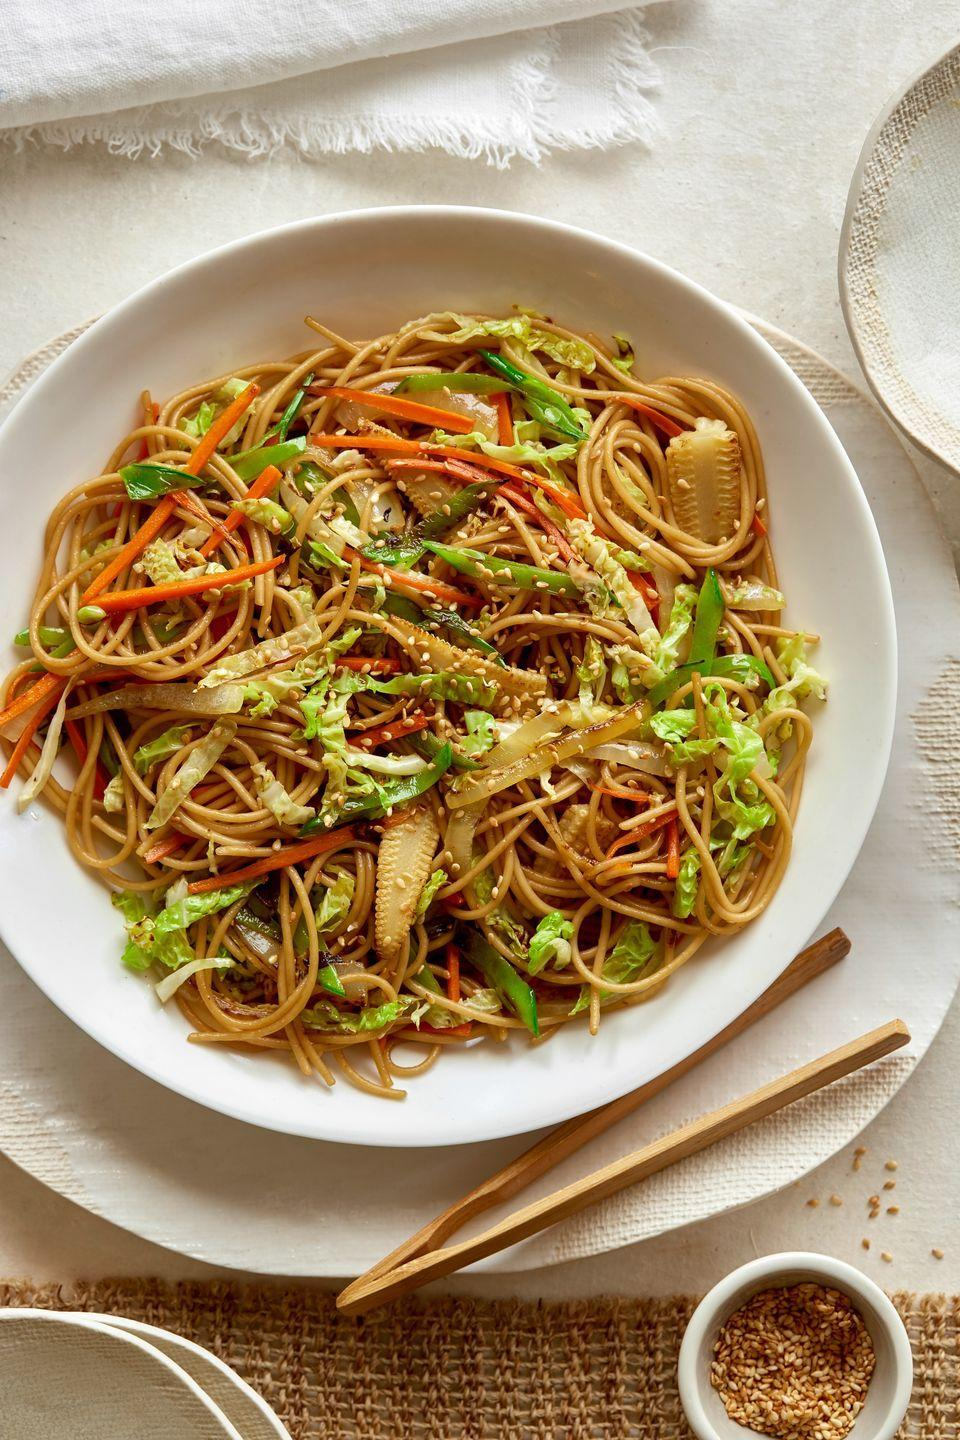 "<p>Your takeout fave, lightened up for Meatless Monday.</p><p>Get the recipe from <a href=""https://www.delish.com/cooking/recipe-ideas/recipes/a52522/loaded-veggie-chow-mein-recipe/"" rel=""nofollow noopener"" target=""_blank"" data-ylk=""slk:Delish"" class=""link rapid-noclick-resp"">Delish</a>.</p>"